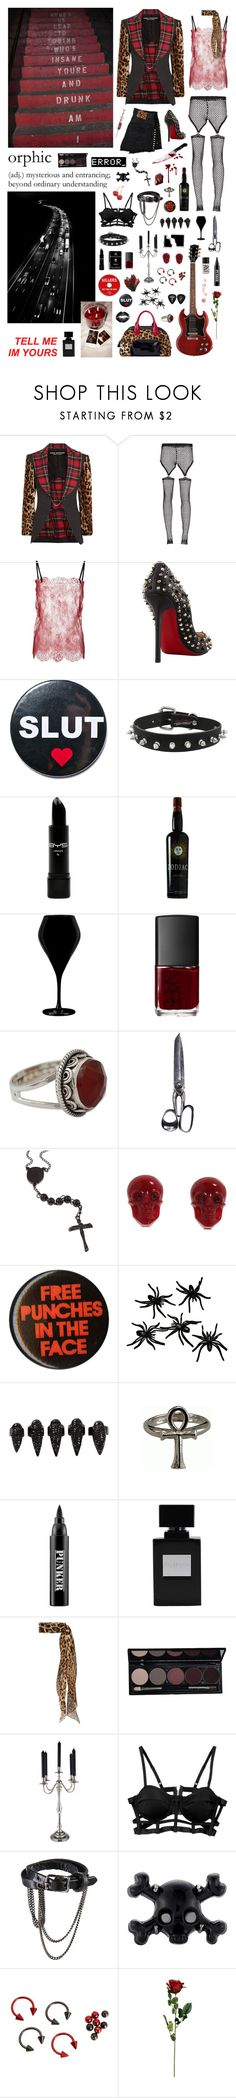 """With me you can die and than born again"" by nothingisnormal ❤ liked on Polyvore featuring Paule Ka, Junya Watanabe, Bohemian Society, Philosophy di Lorenzo Serafini, Christian Louboutin, Hollywood Mirror, Qualia, NARS Cosmetics, NOVICA and Tarina Tarantino"